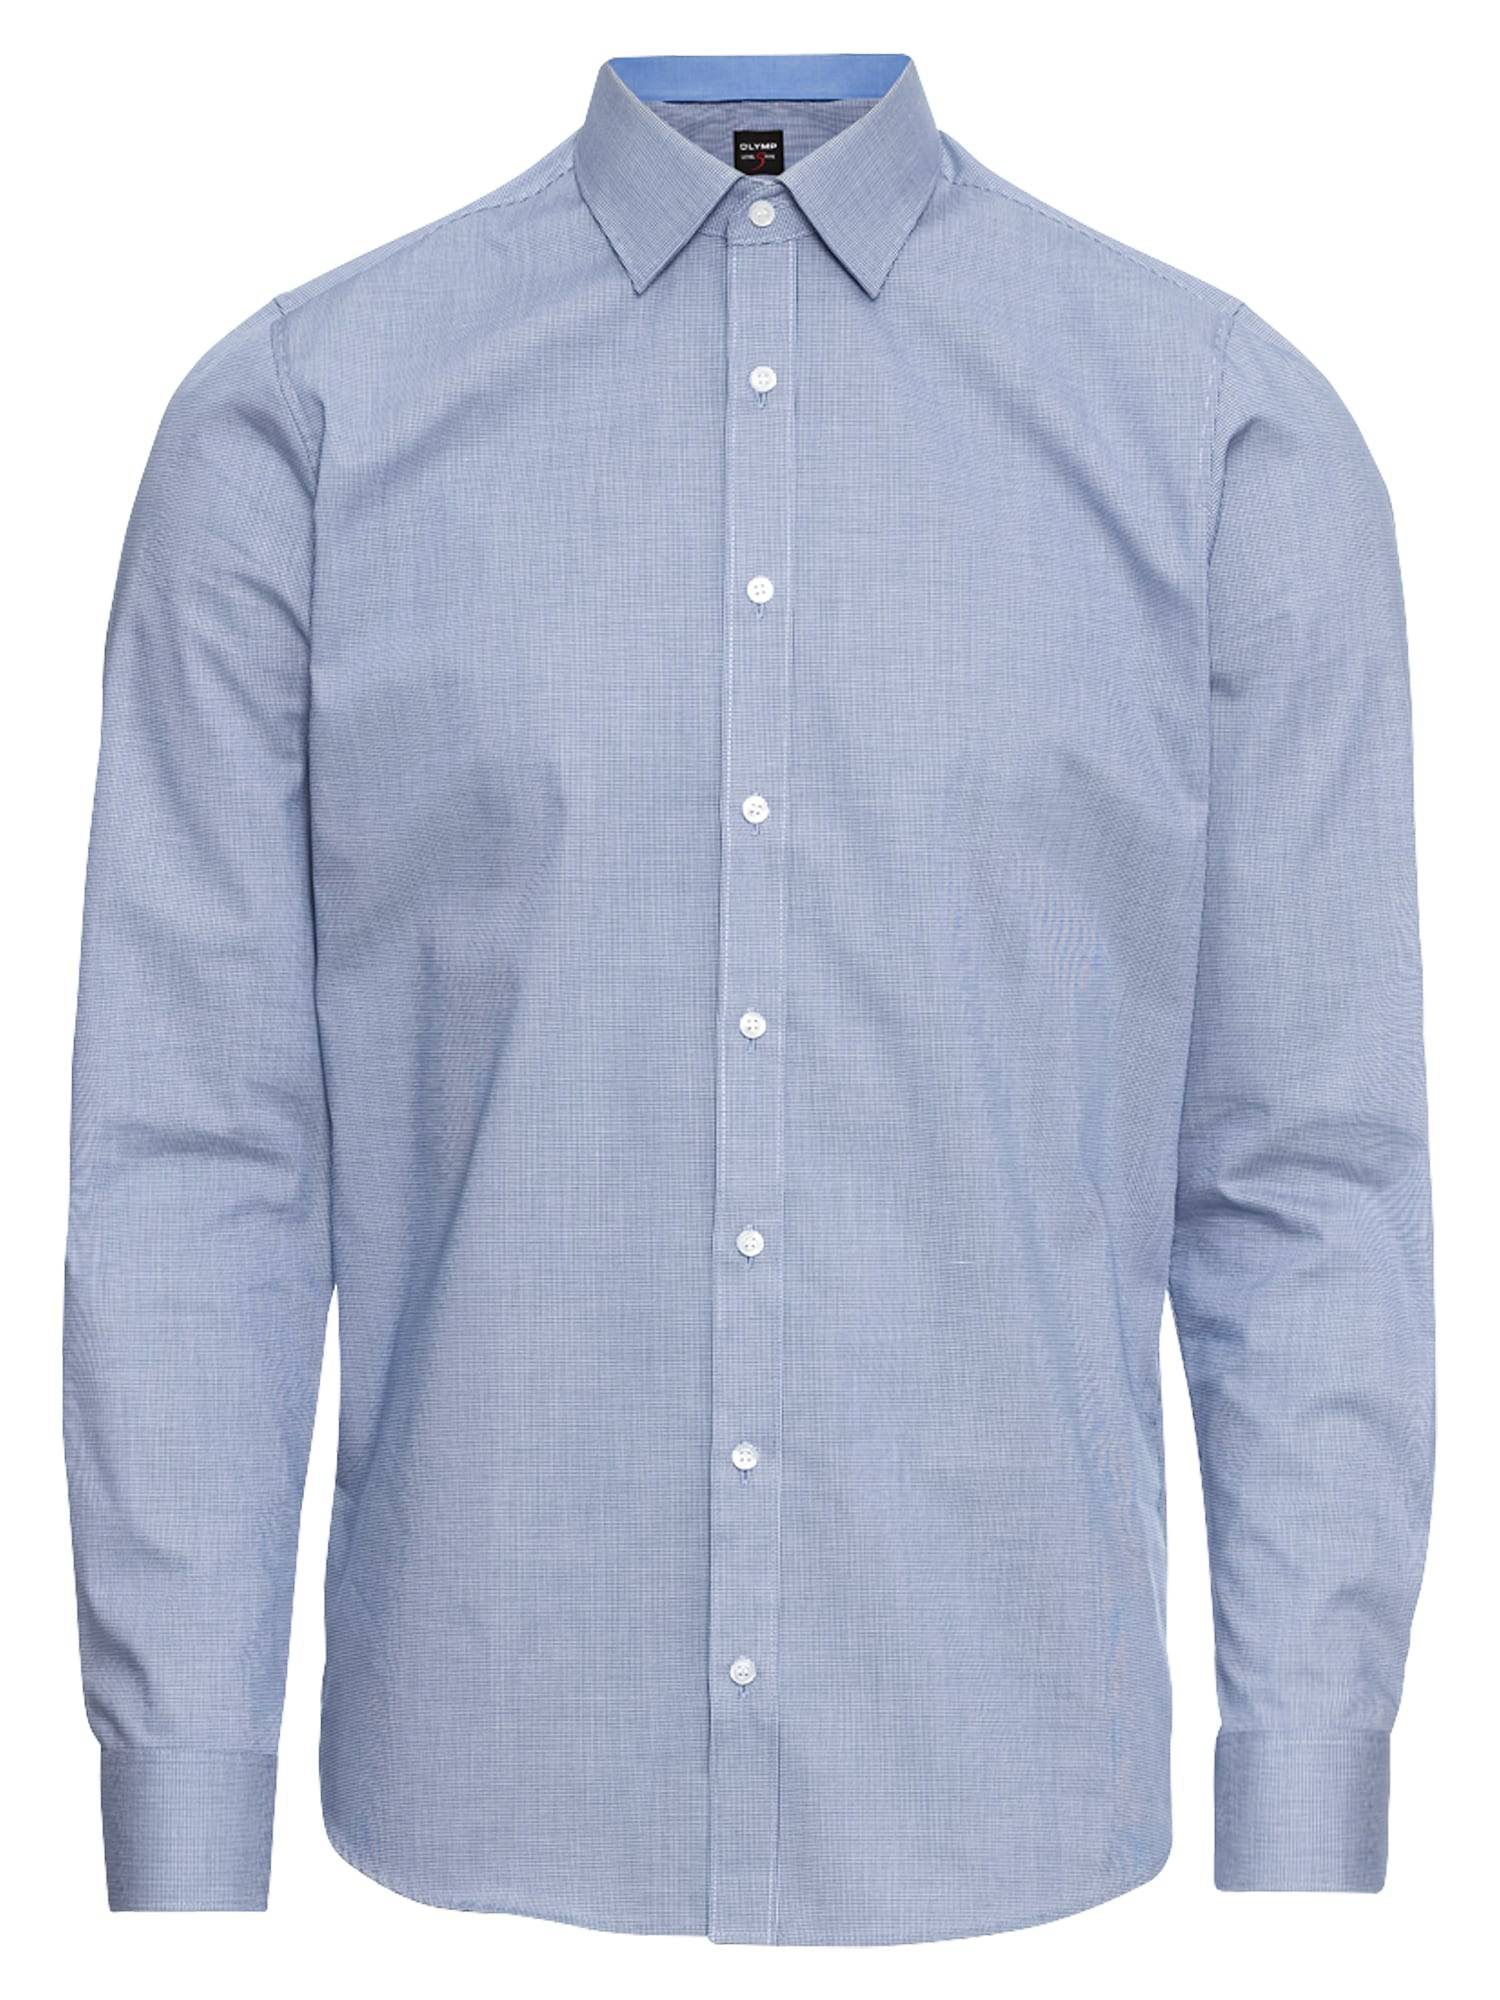 OLYMP Chemise business 'Level 5 Faux Uni'  - Bleu - Taille: 40 - male